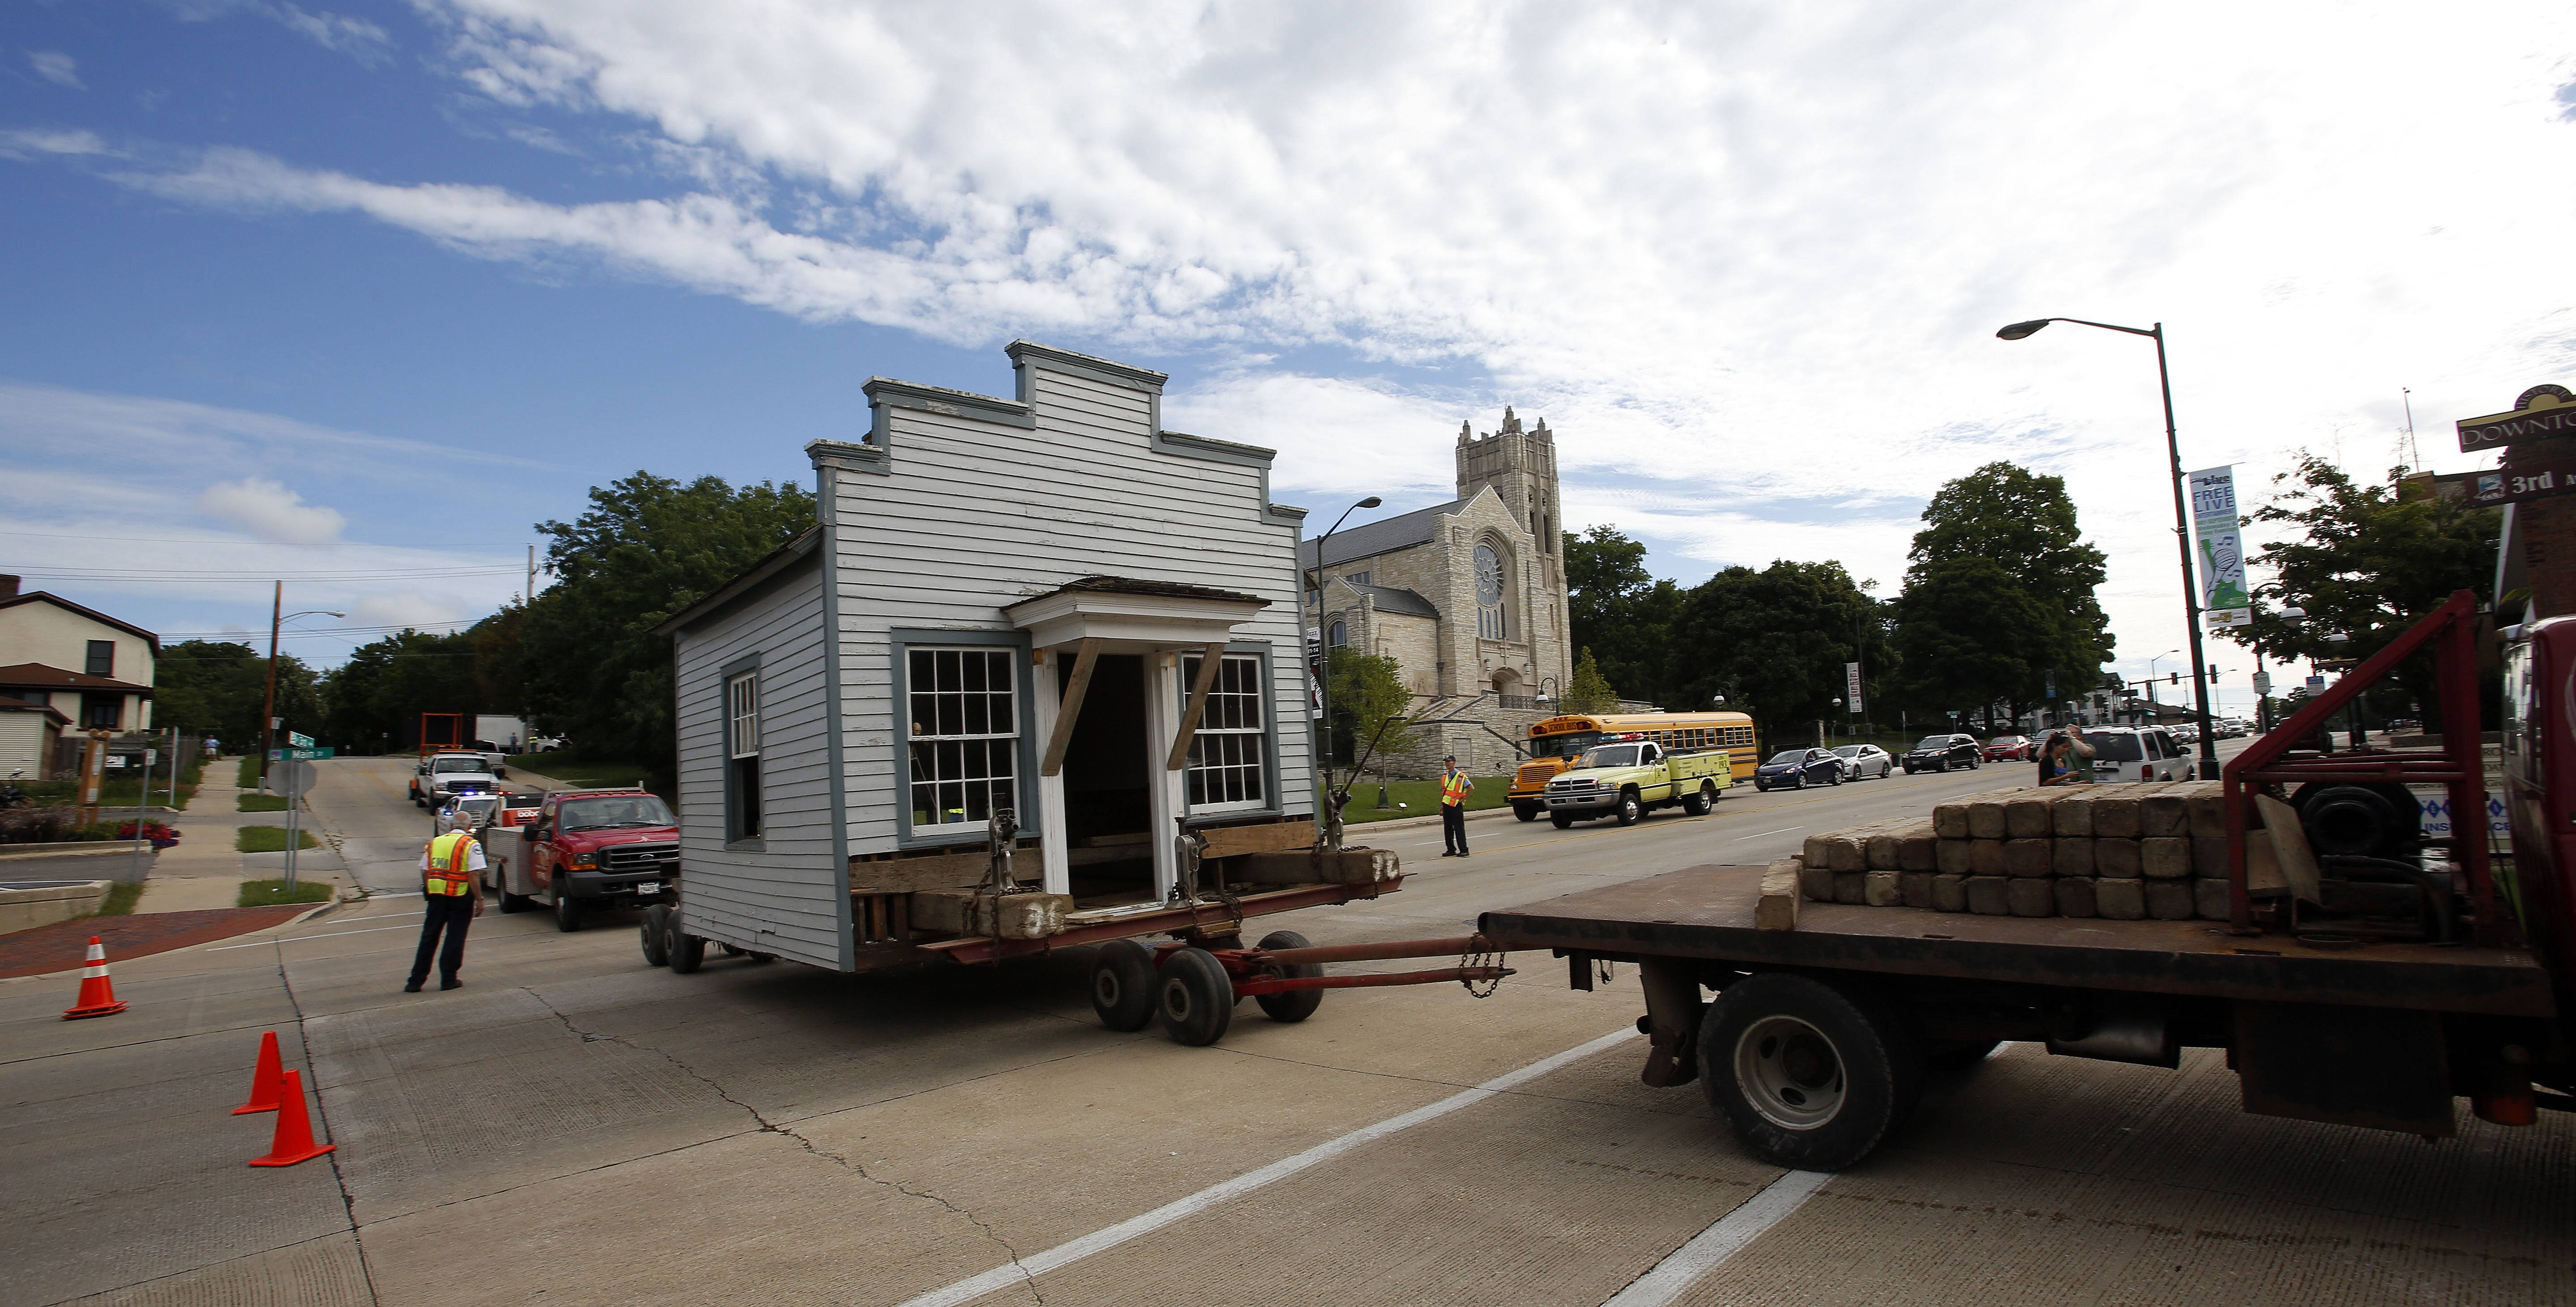 The historic Jones Law Office building crosses Main Street in St. Charles Wednesday en route to its new location in Langum Park along Route 25 near Devereaux Way.